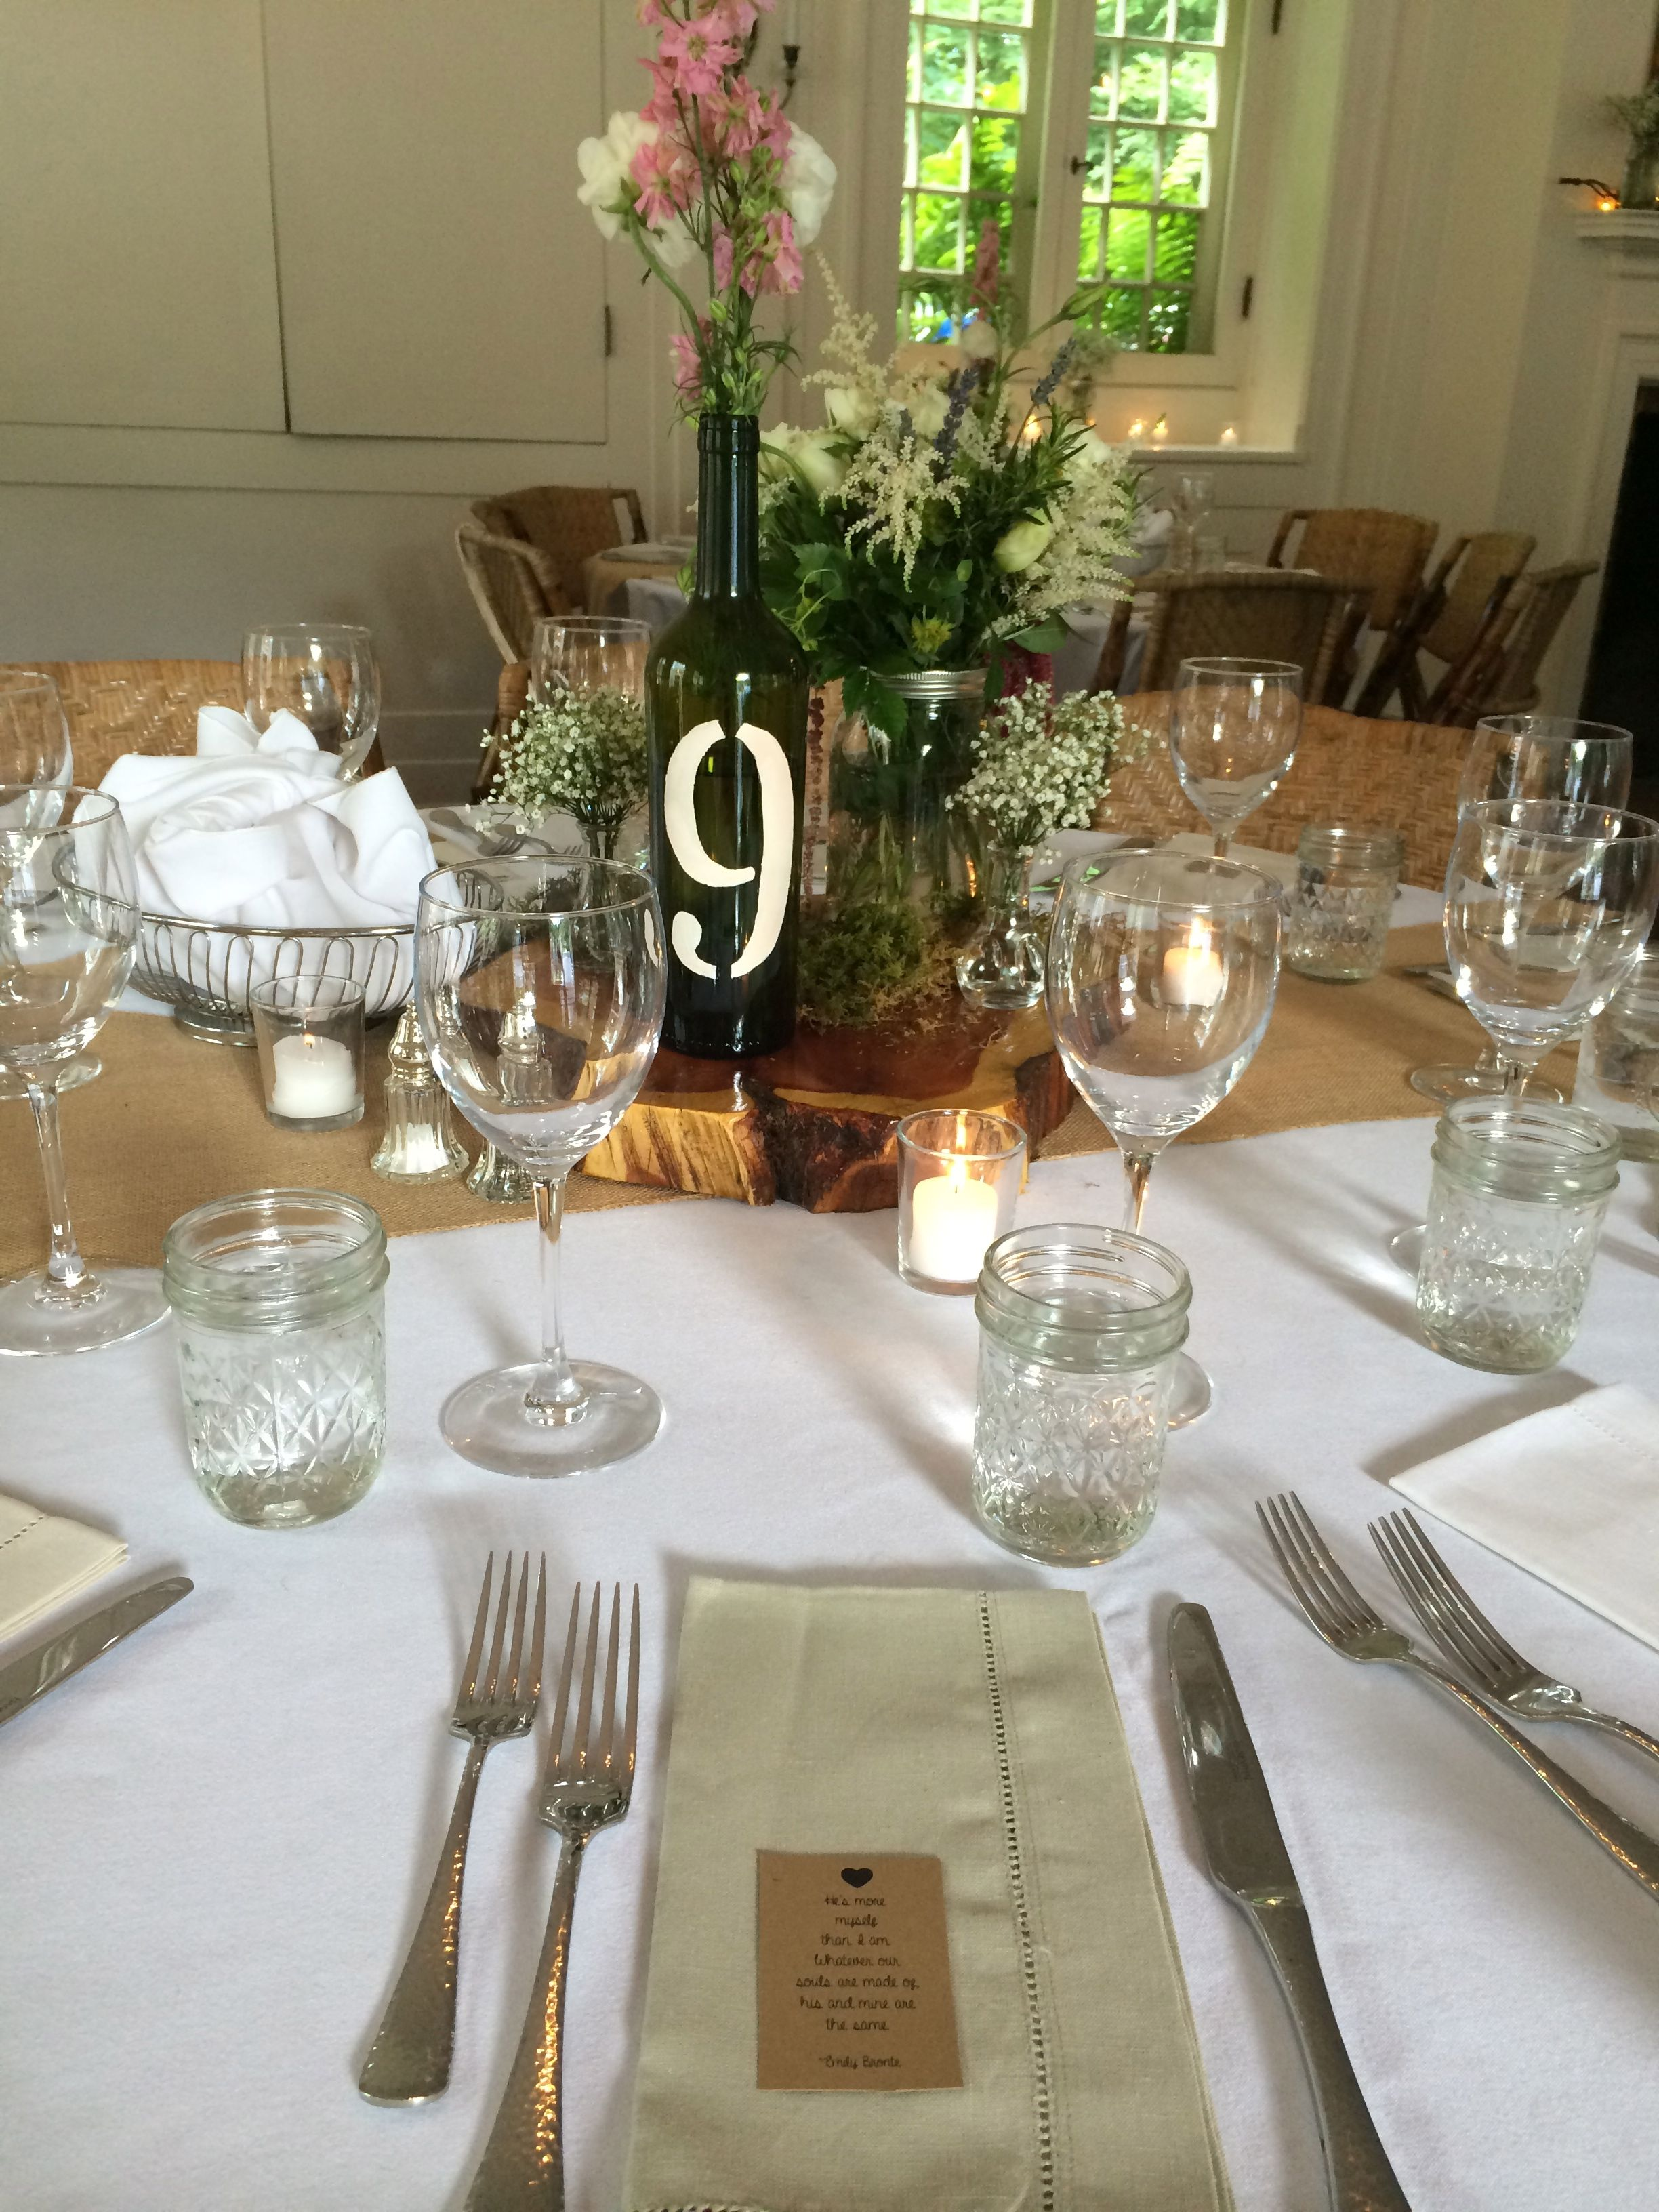 latest pictures from this weekends wedding we catered at the